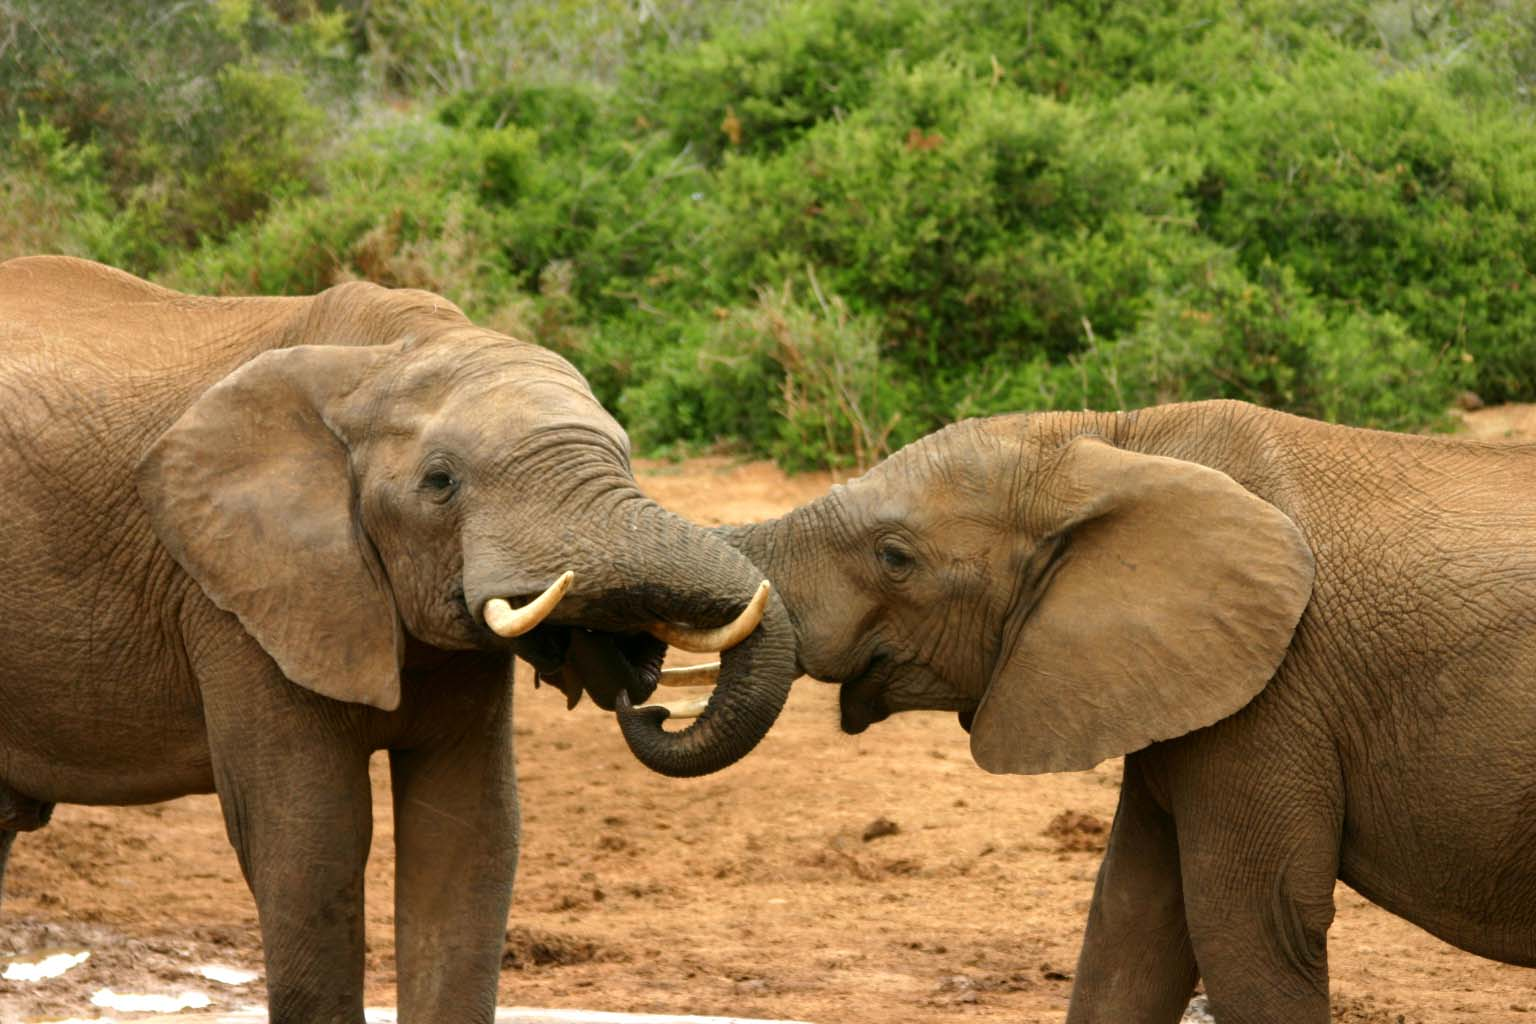 Cool African Elephants Mating Rituals picturespider com